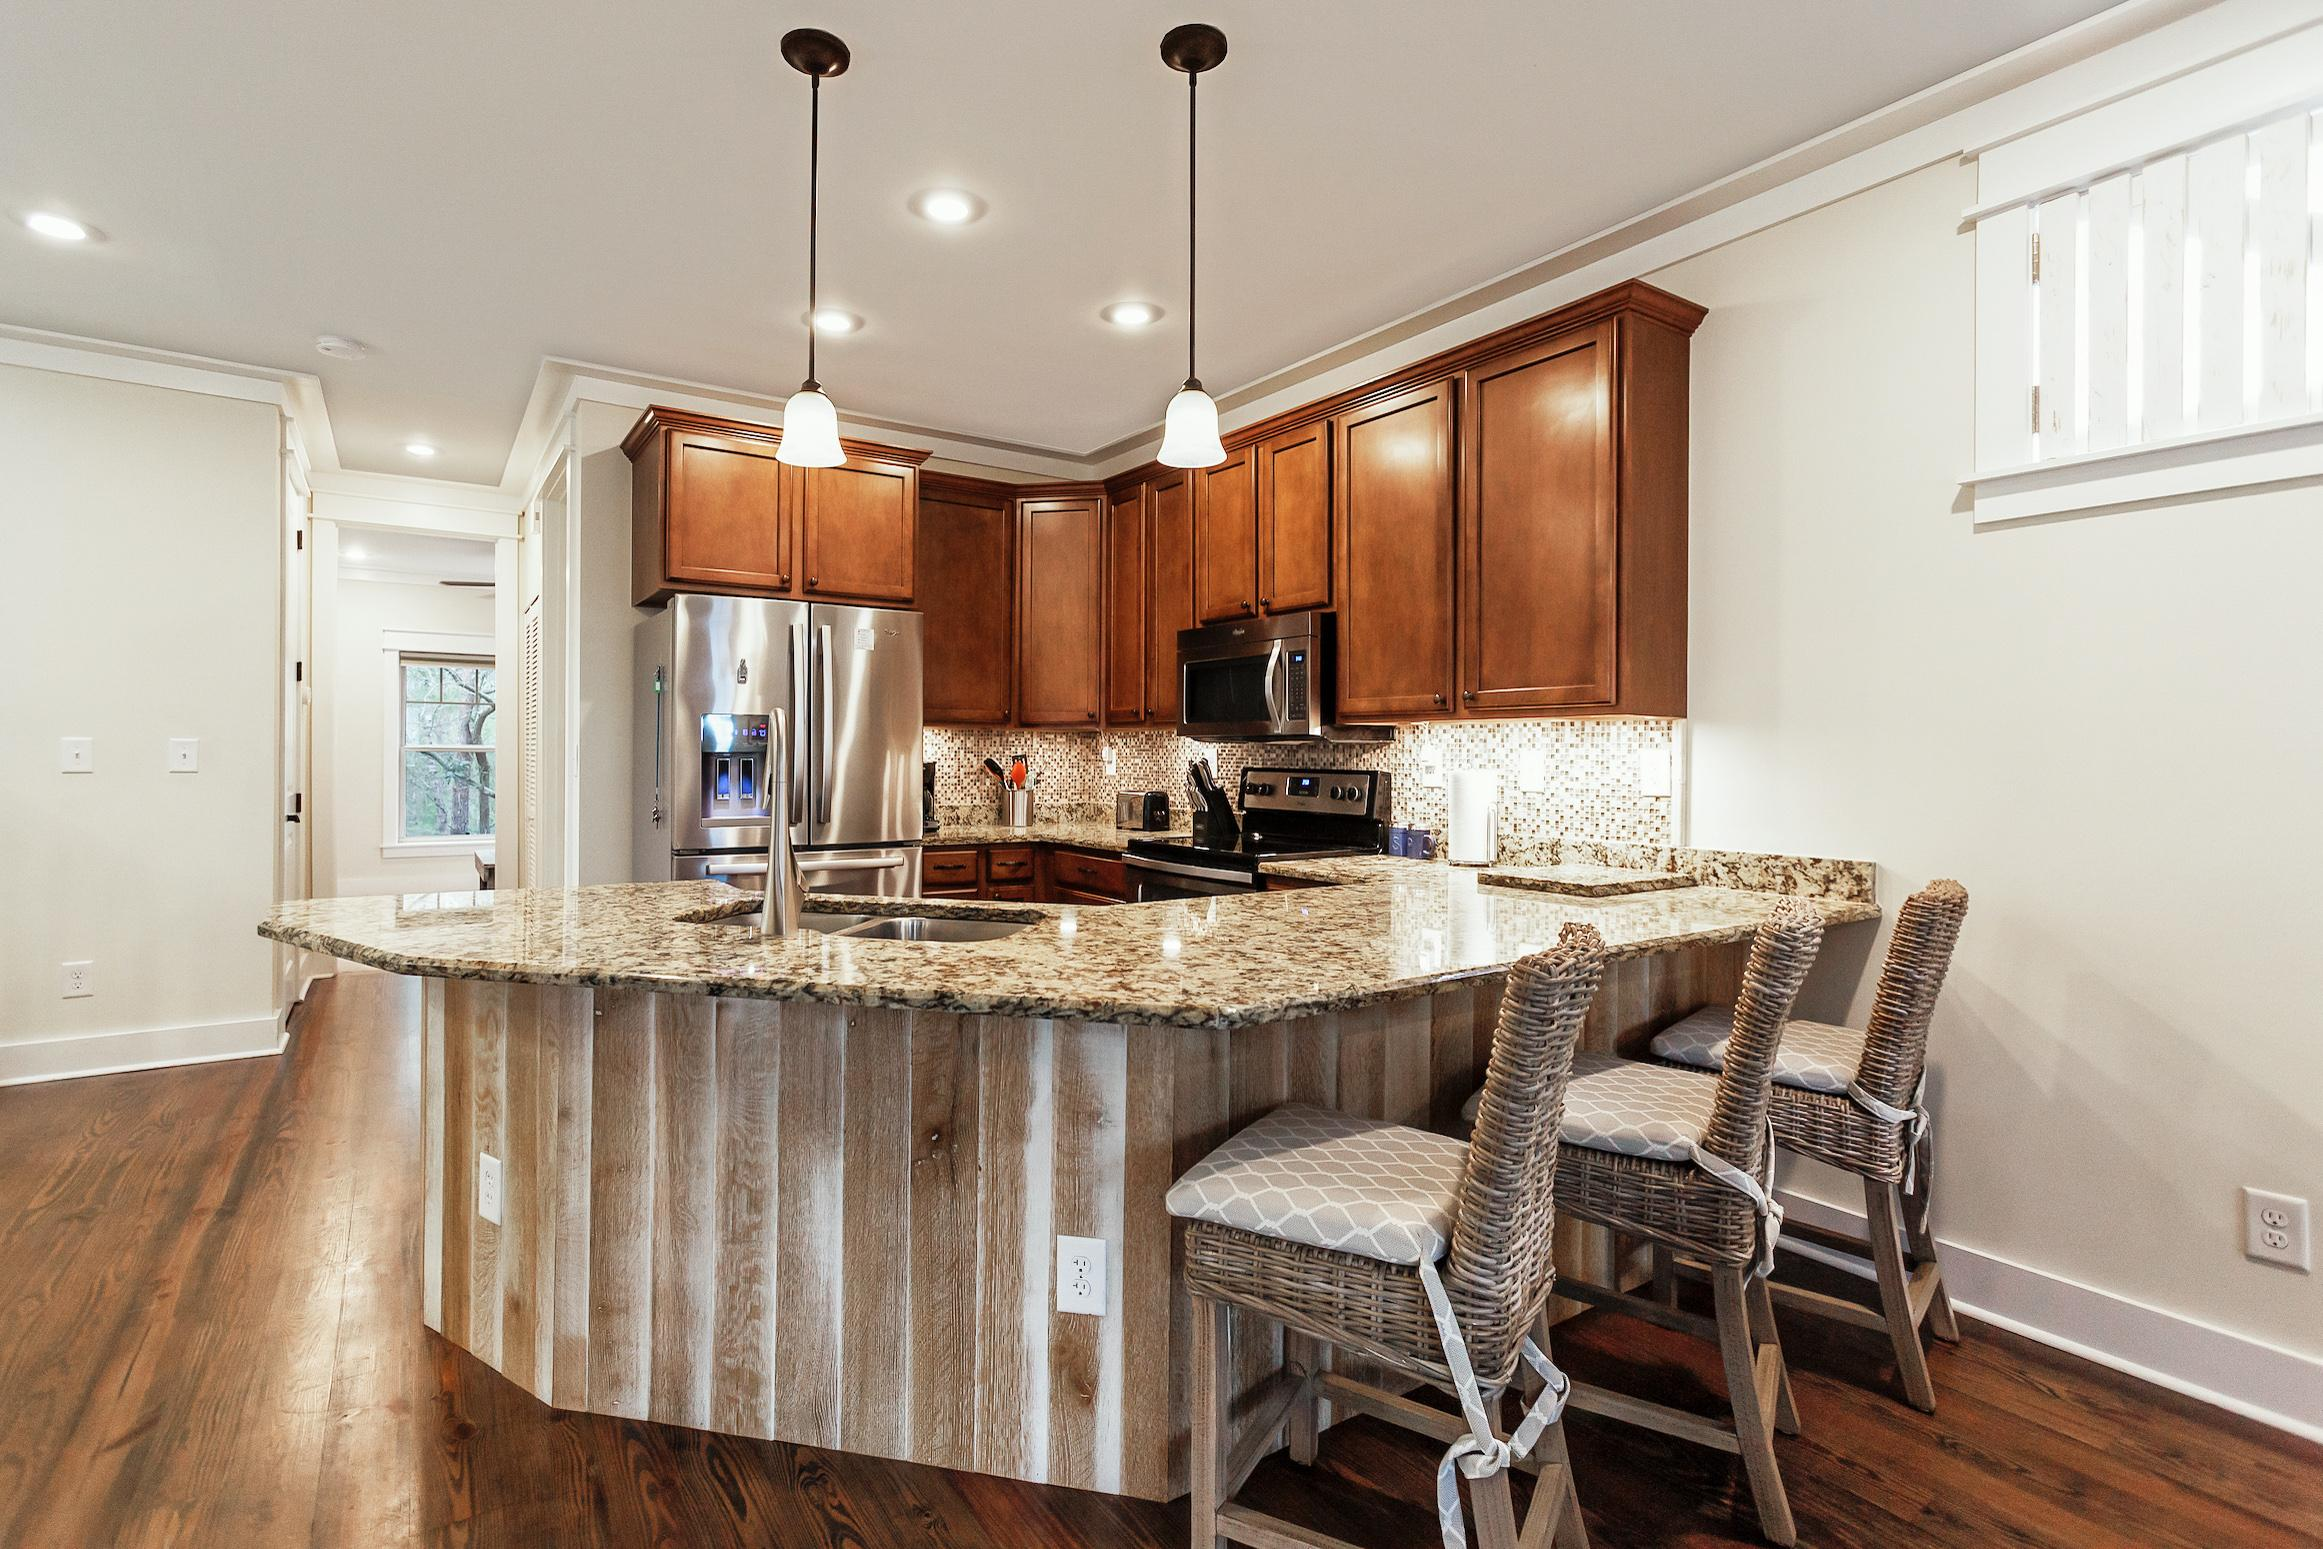 Cook up a feast in the gourmet kitchen, outfitted with sparkling granite countertops.